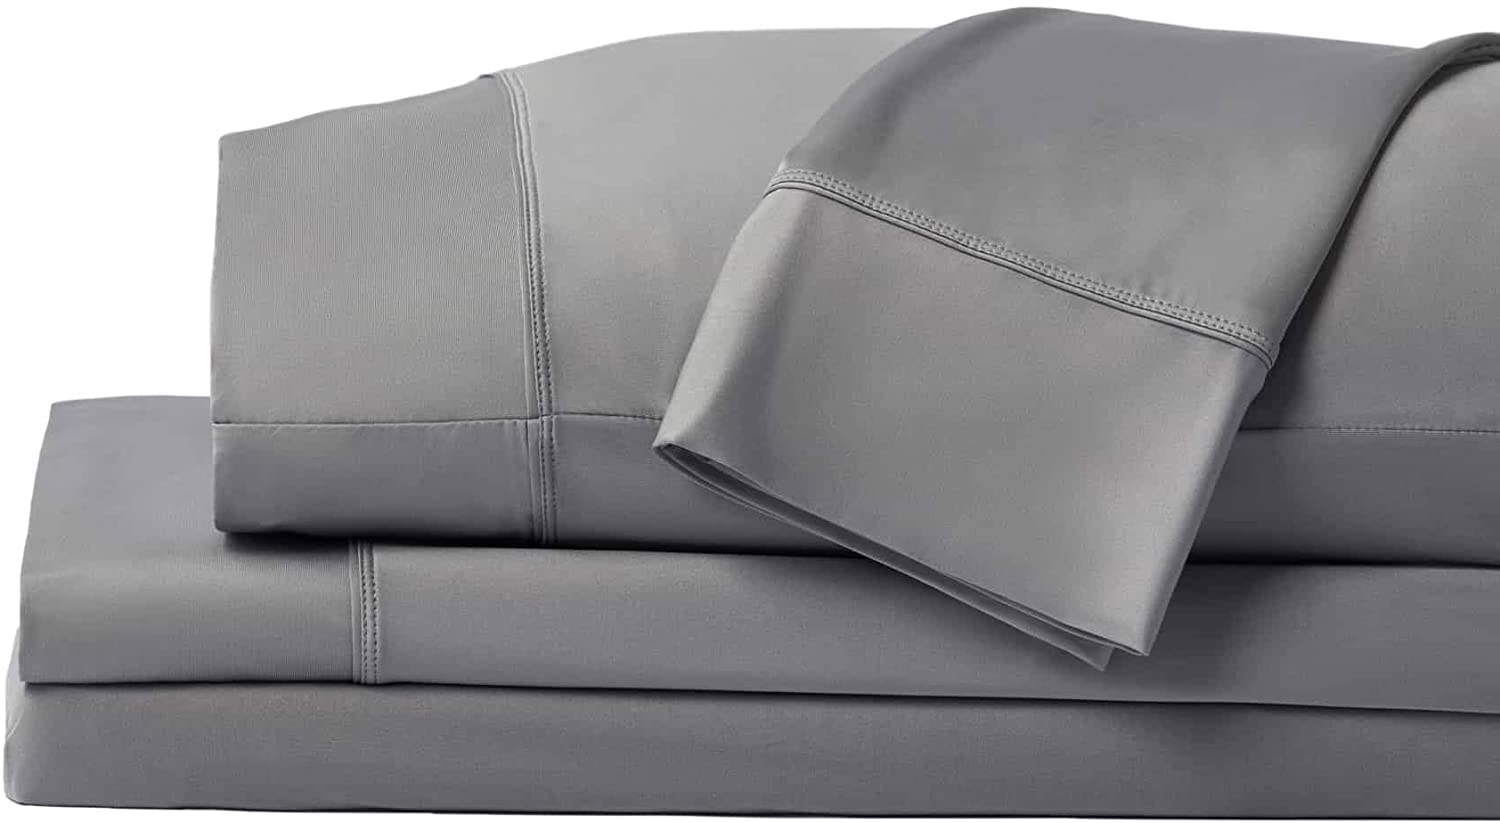 SHEEX Original Performance Sheet Set with 2 Pillowcases, Ultra-Soft Fabric Cooling and Breathes Better Than Traditional Cotton, Graphite, Queen : Home & Kitchen